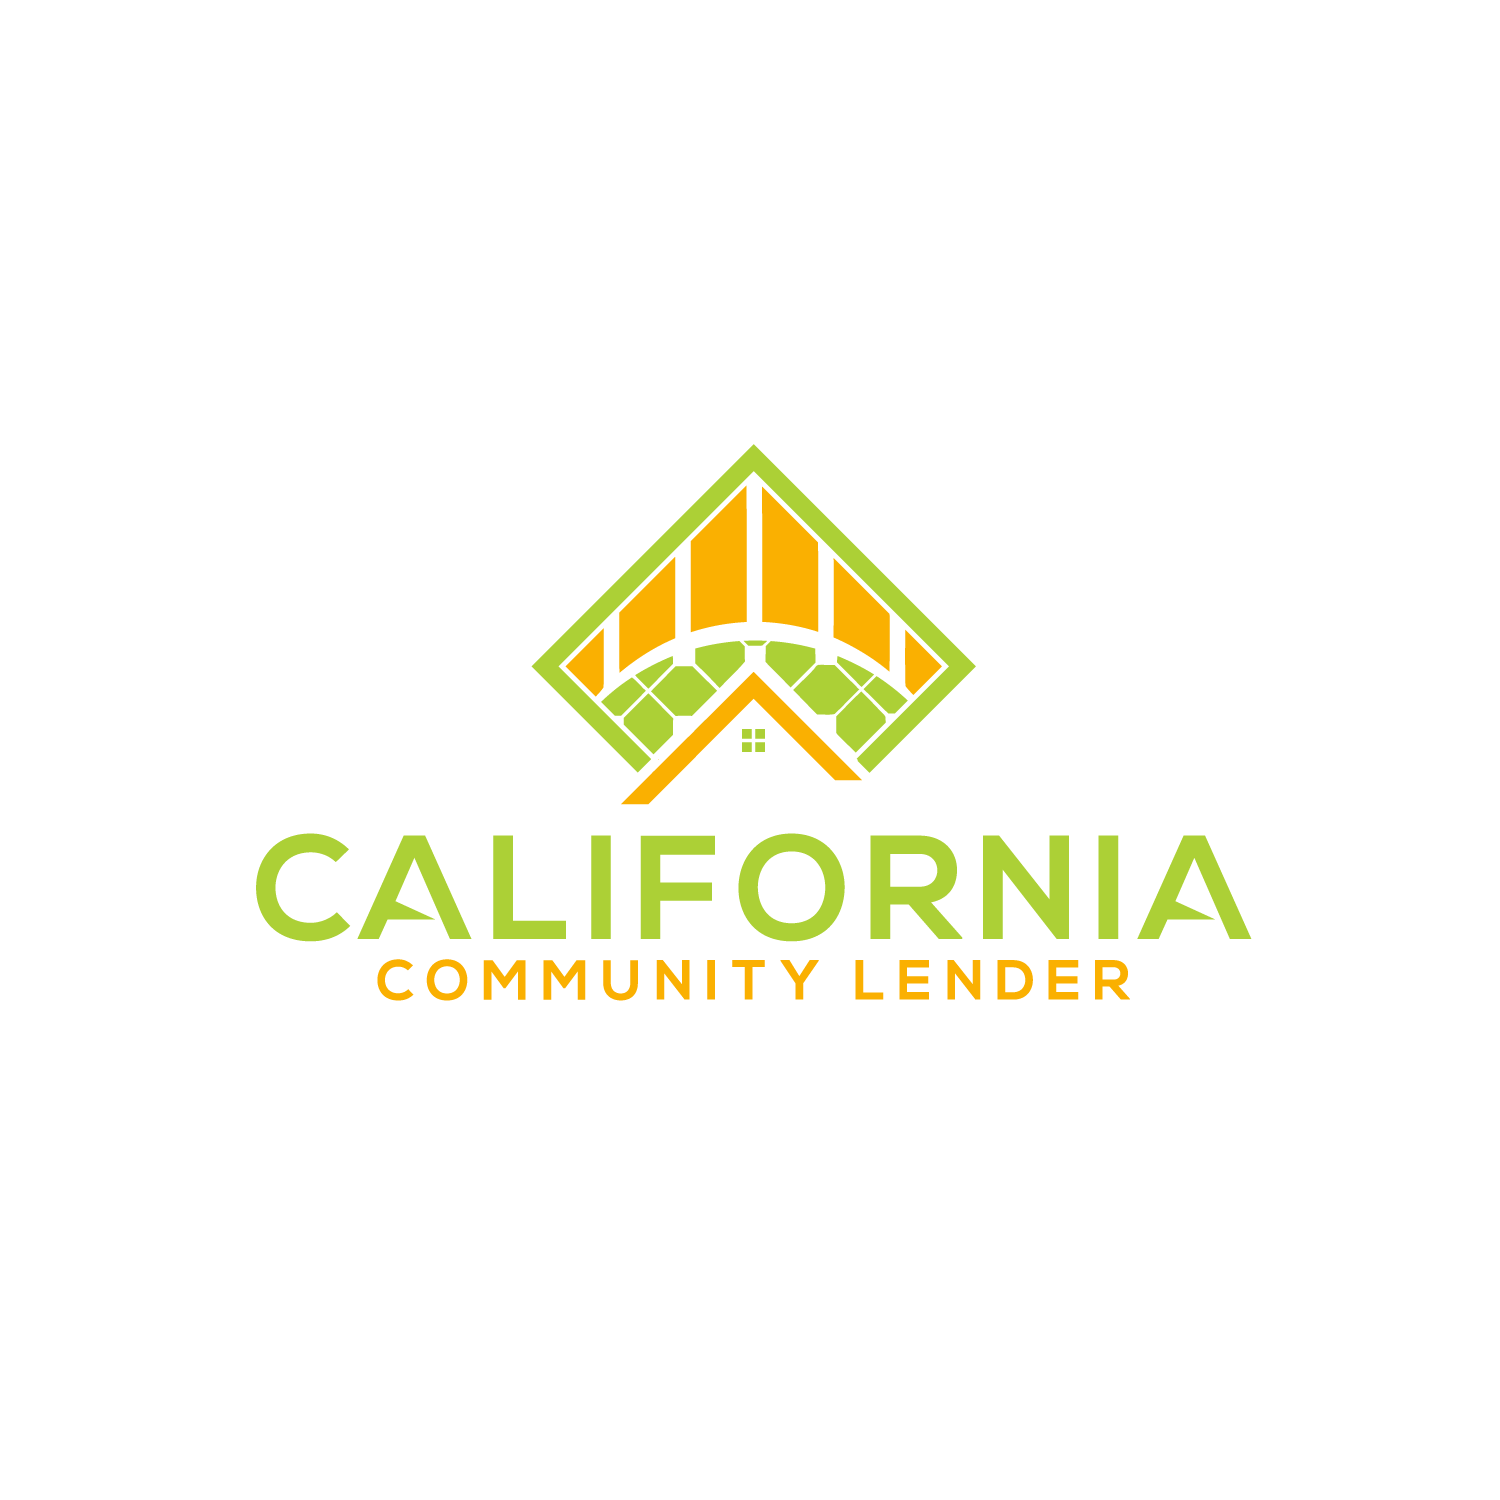 Book an Appointment - Contact our Development Finance Team directly to learn more about how they can help you expand your program and/or impact.Office Contact707-595-8055Info@cclender.org3468 Piner Road, Santa Rosa CA, 95401EIN: 82-3498516NMLS: 1715079